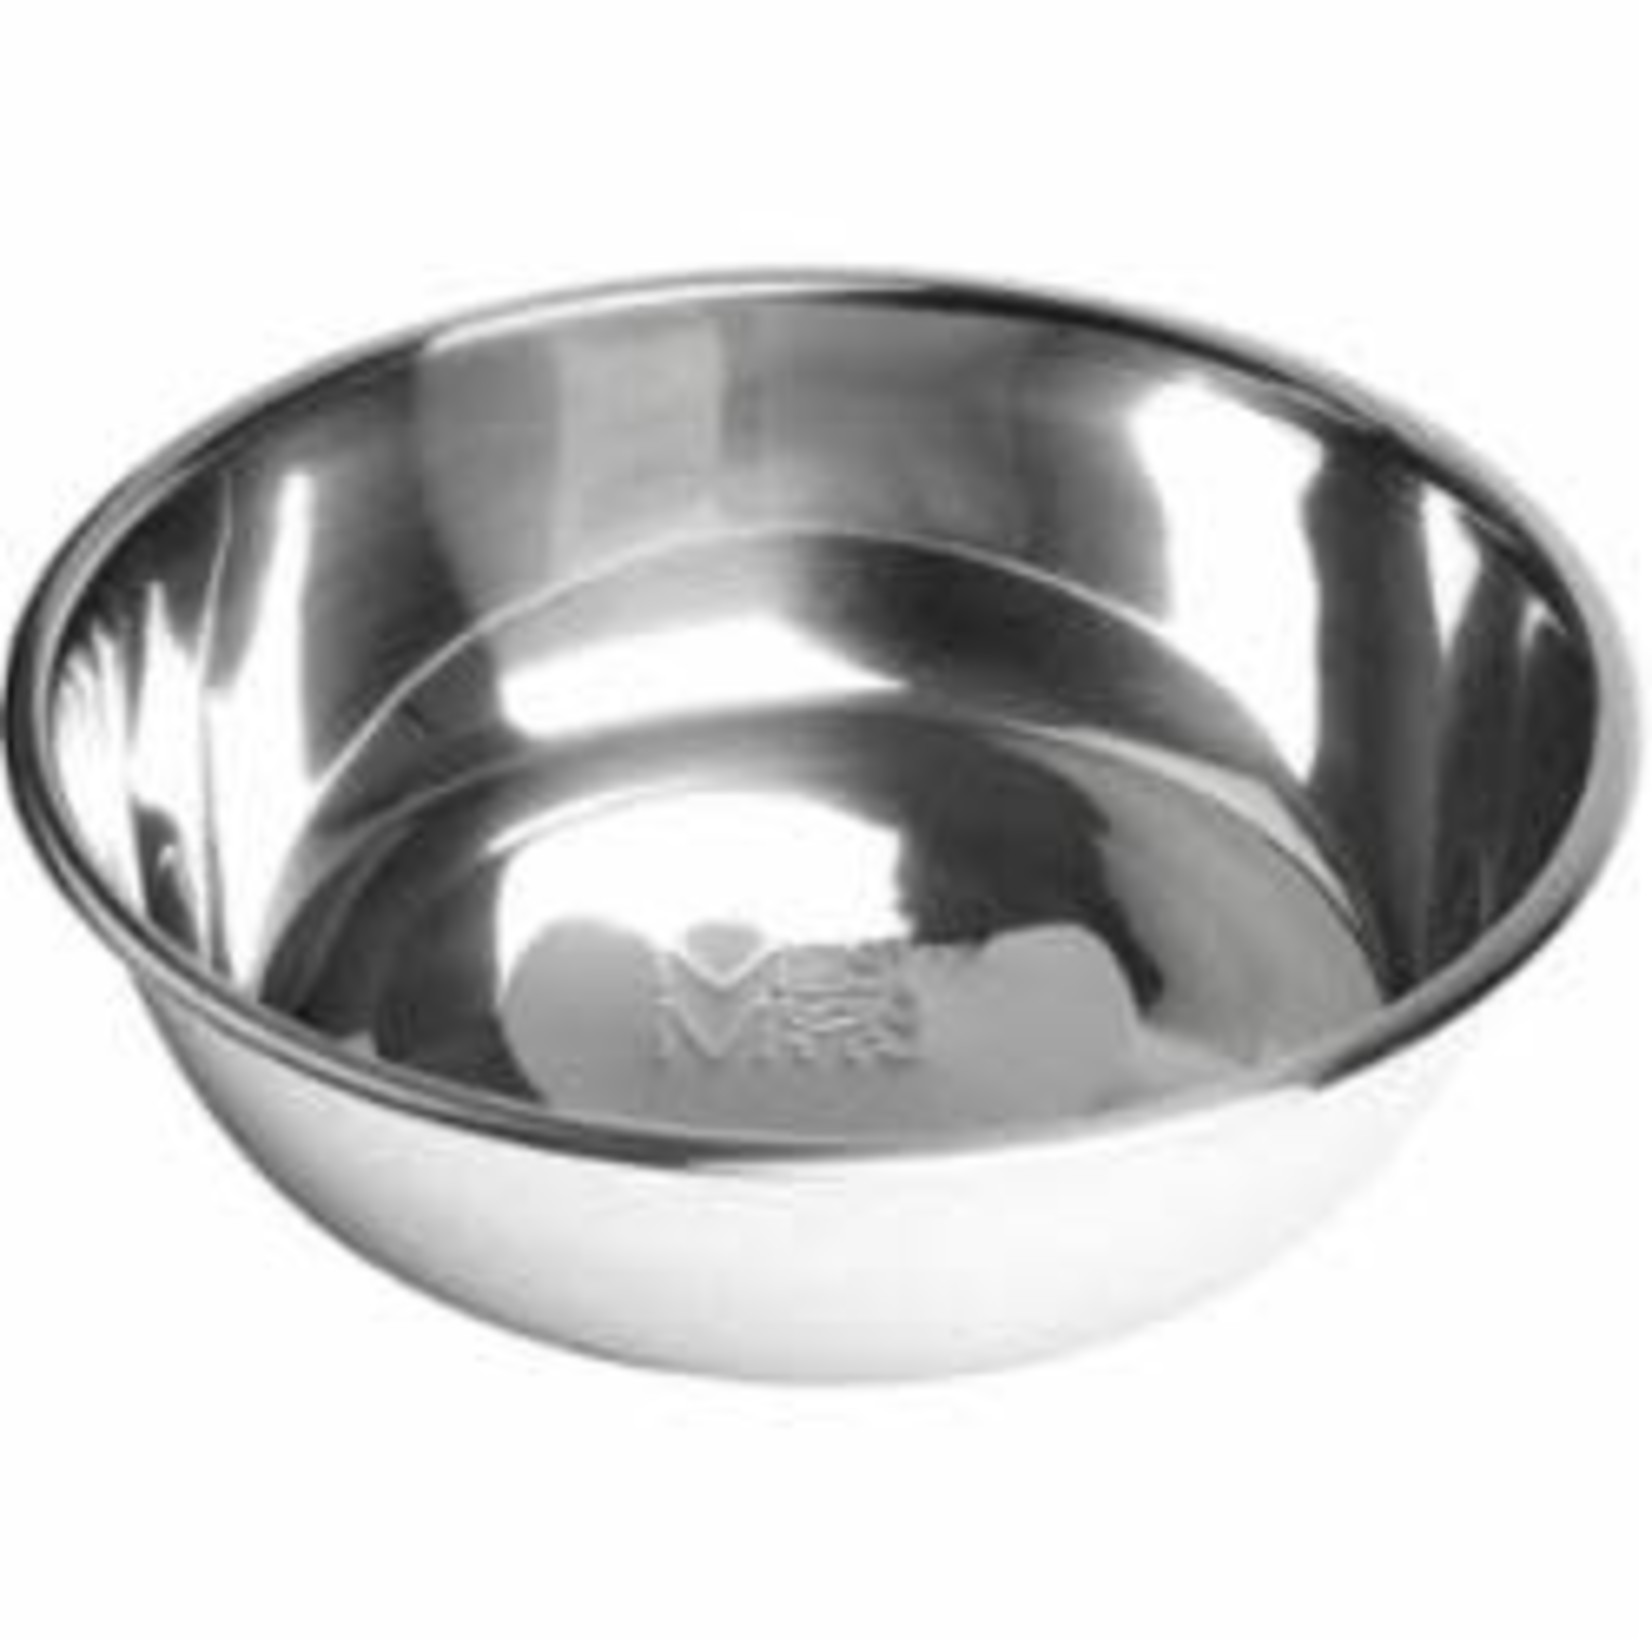 Messy Mutts Messy Mutts Stainless Steel Dog Bowl 1.5 CUP